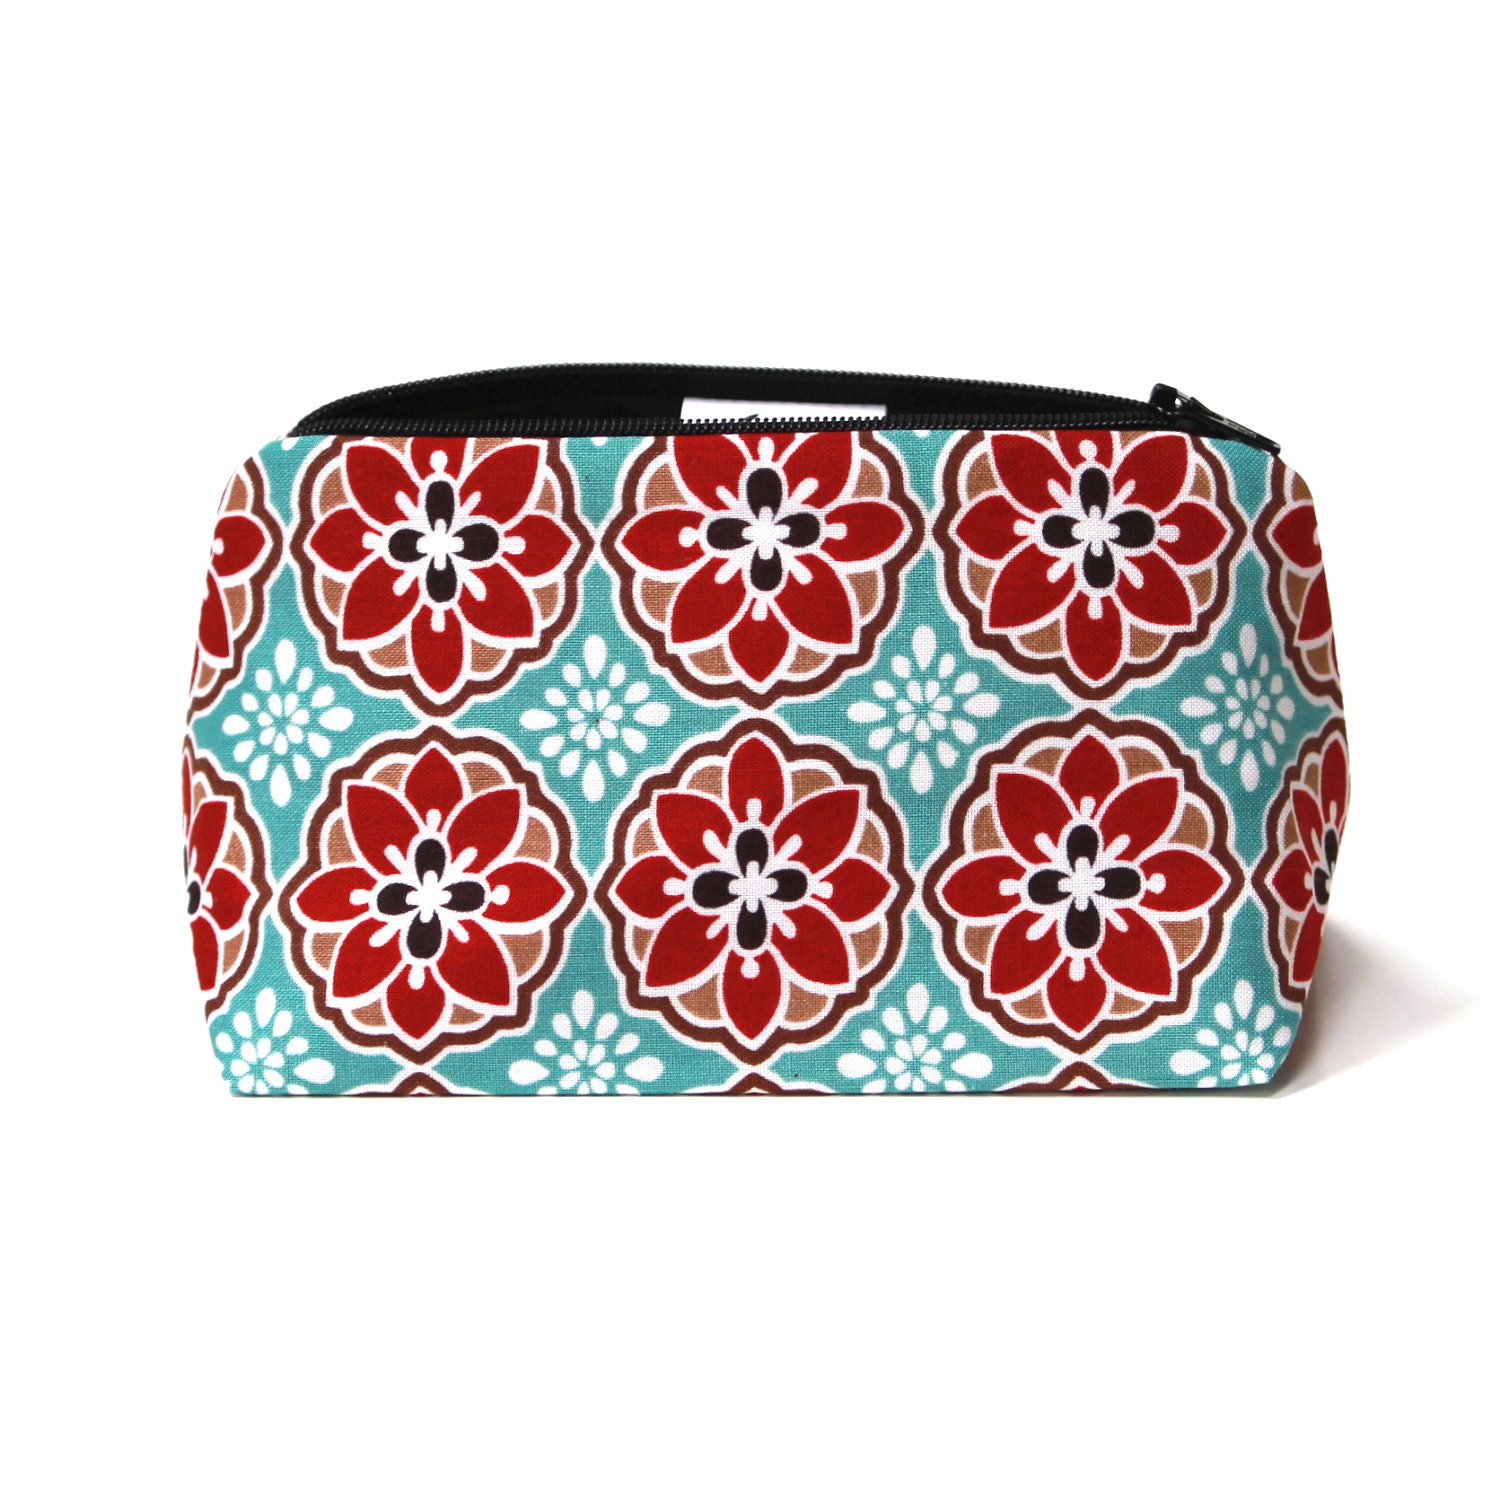 Black Friday SALE Stocking Stuffer Makeup Bag in Aqua & Red Vintage Floral Print - Bridesmaid Gift Fall Autumn 2012 Collection